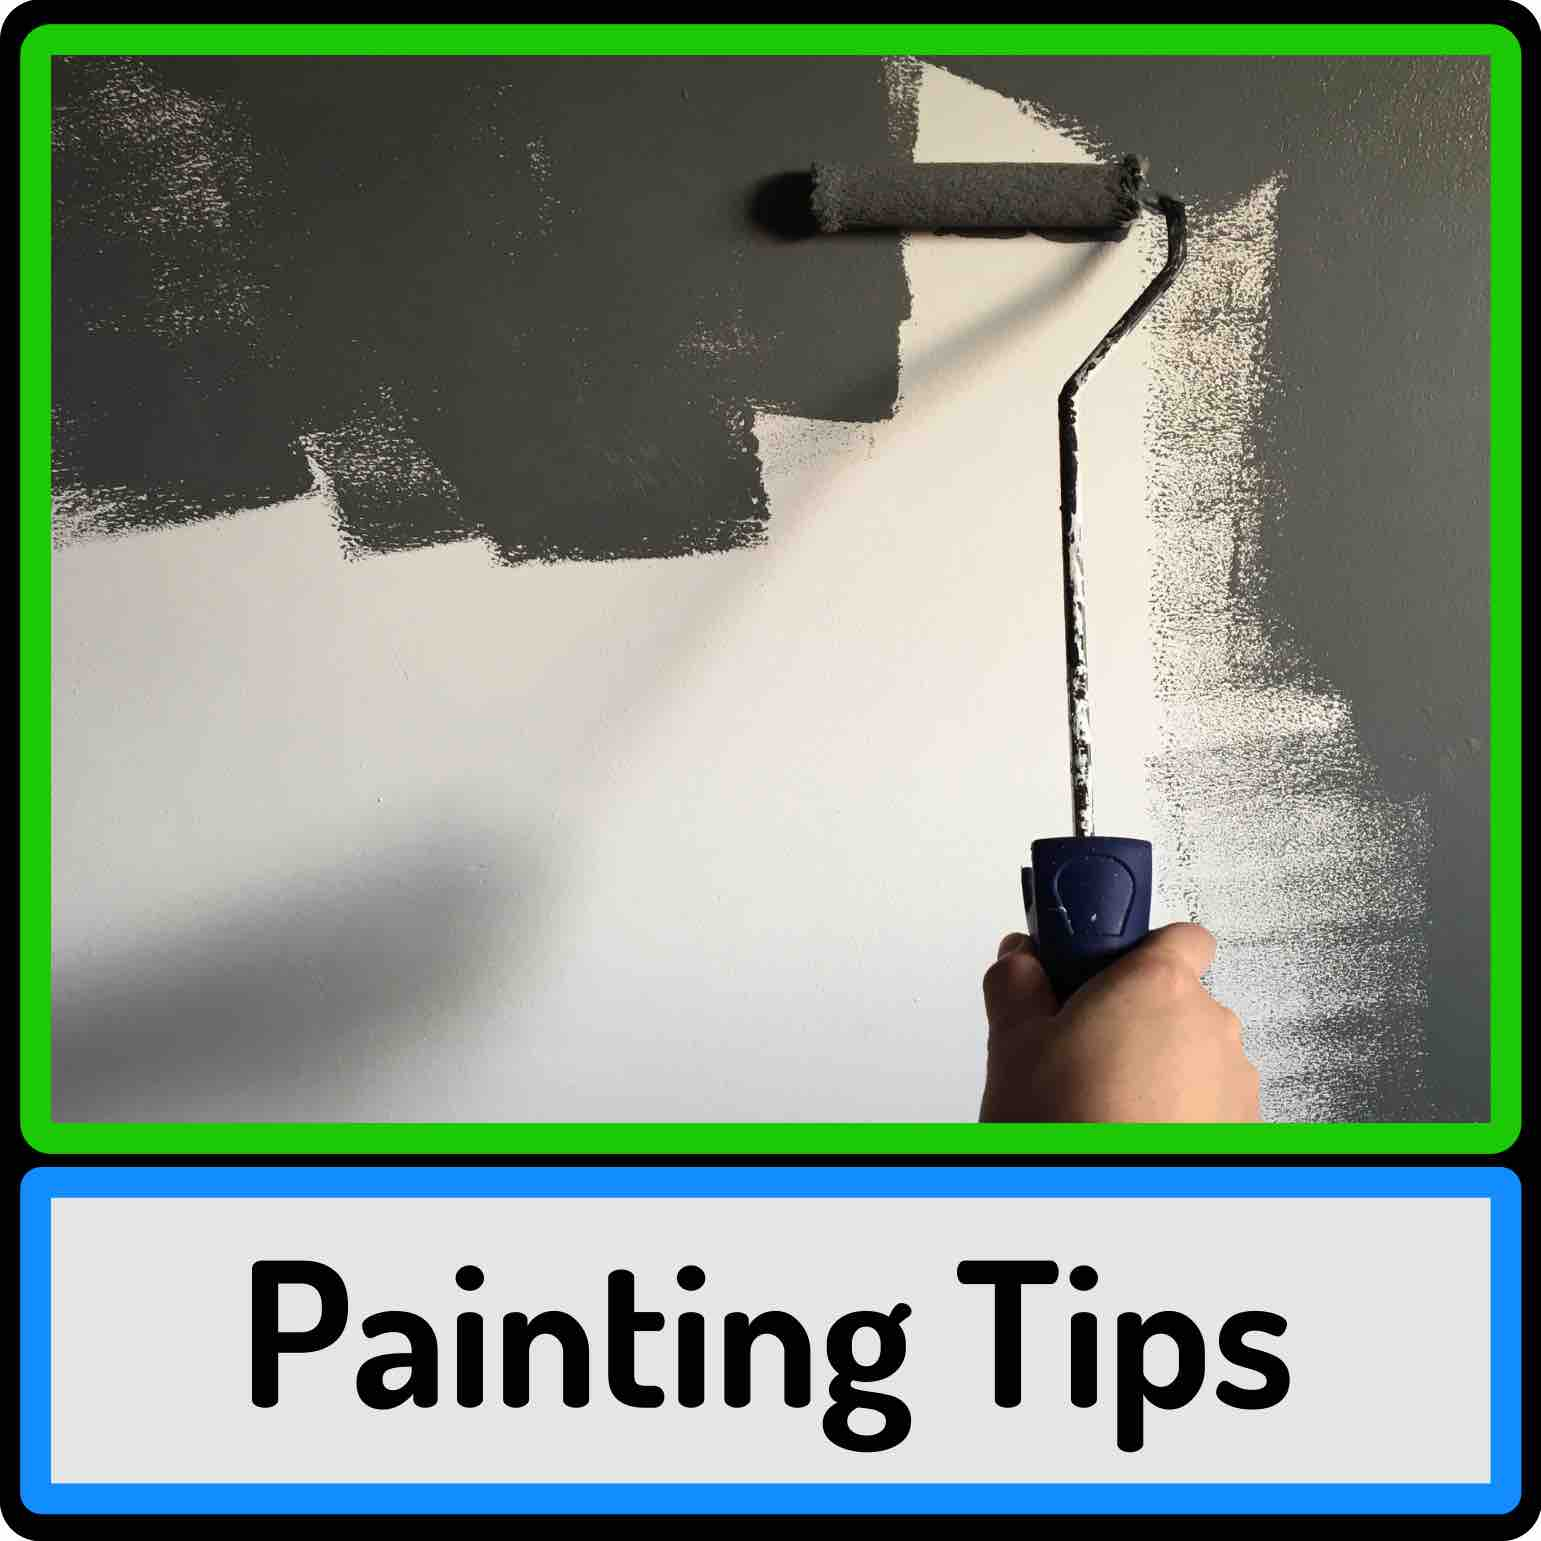 Image Link to a page giving you Tips and advice for painting and decorating.